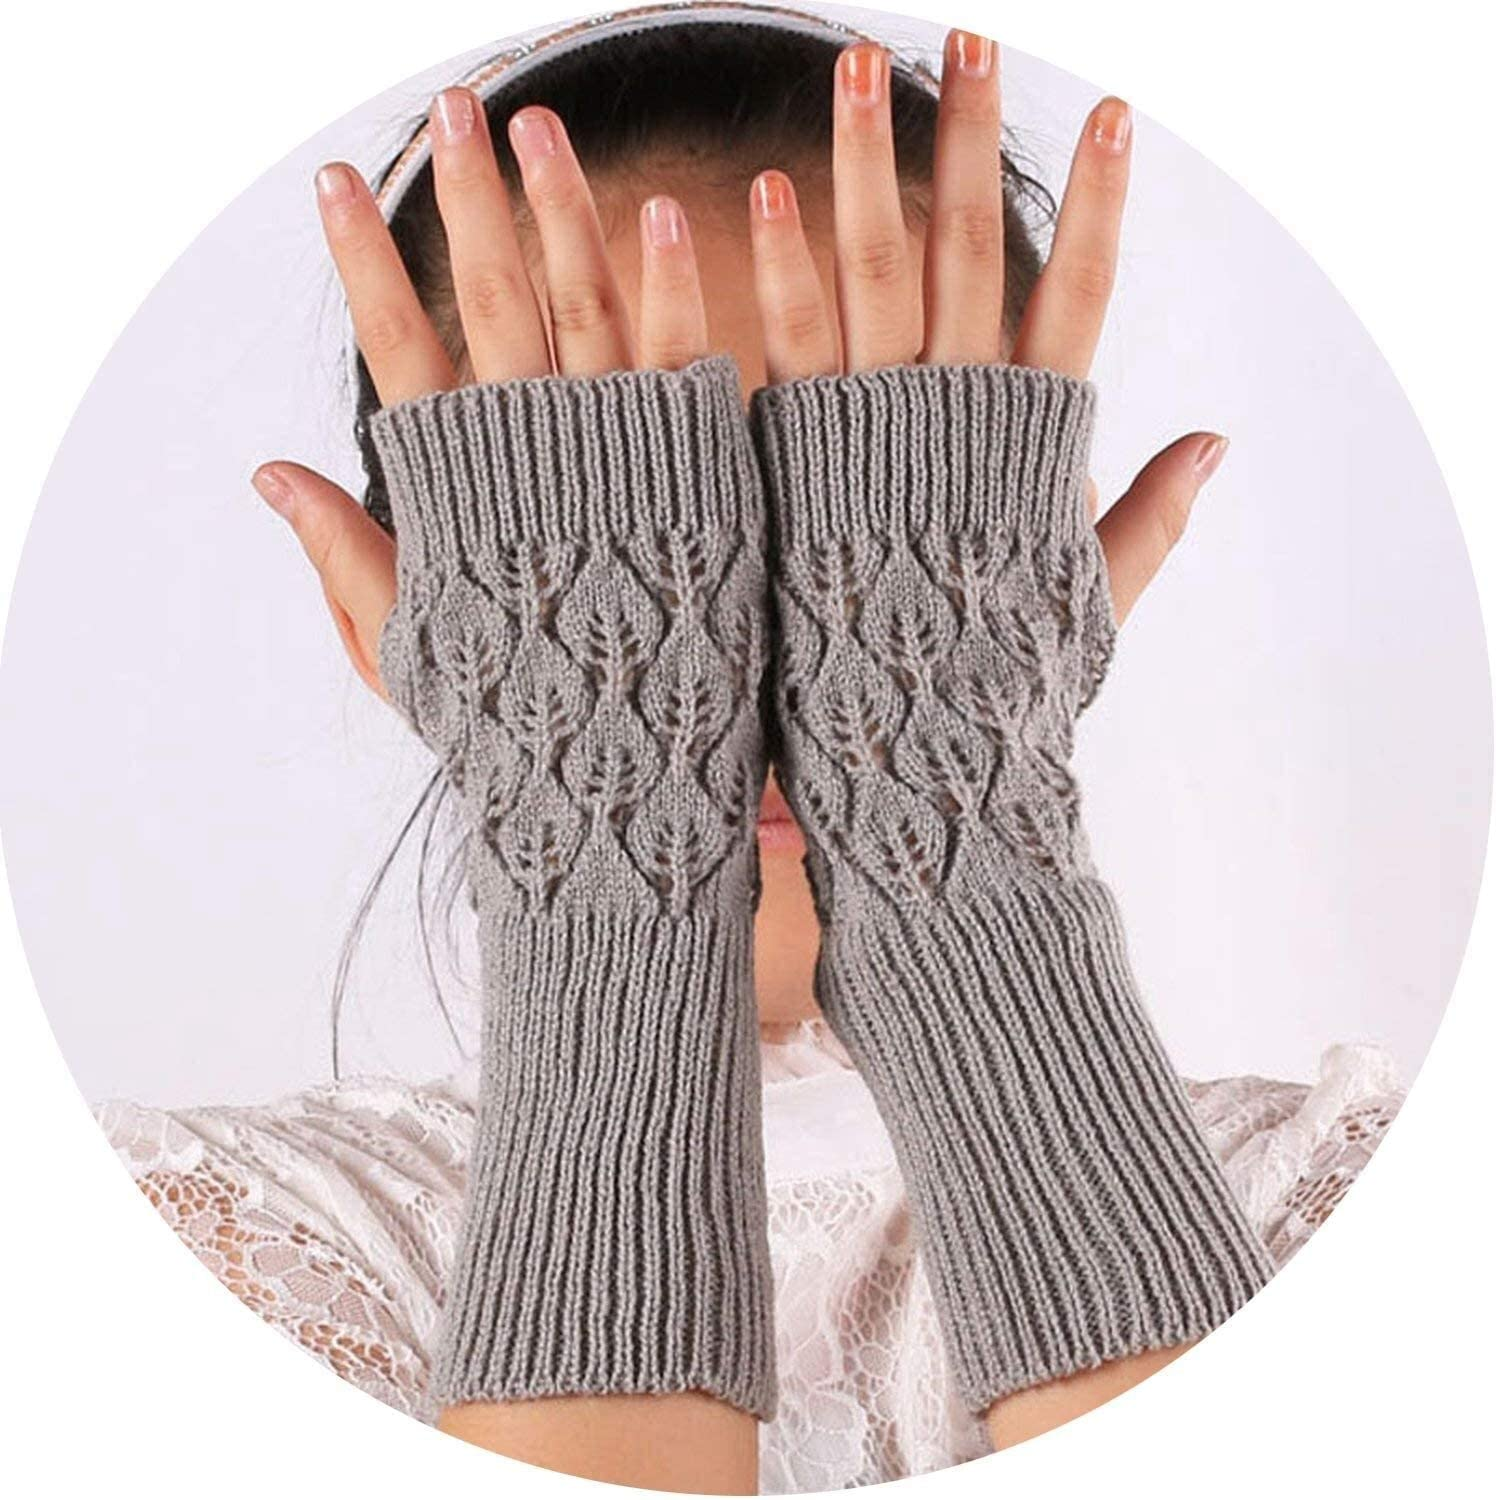 Samantha Warm Gloves Warm Knitted Fingerless Gloves Hollow Out Leaves Long Section Winter Long Fingerless Knitting Wool Mittens (Color : Light Gray, Size : Oneszie)